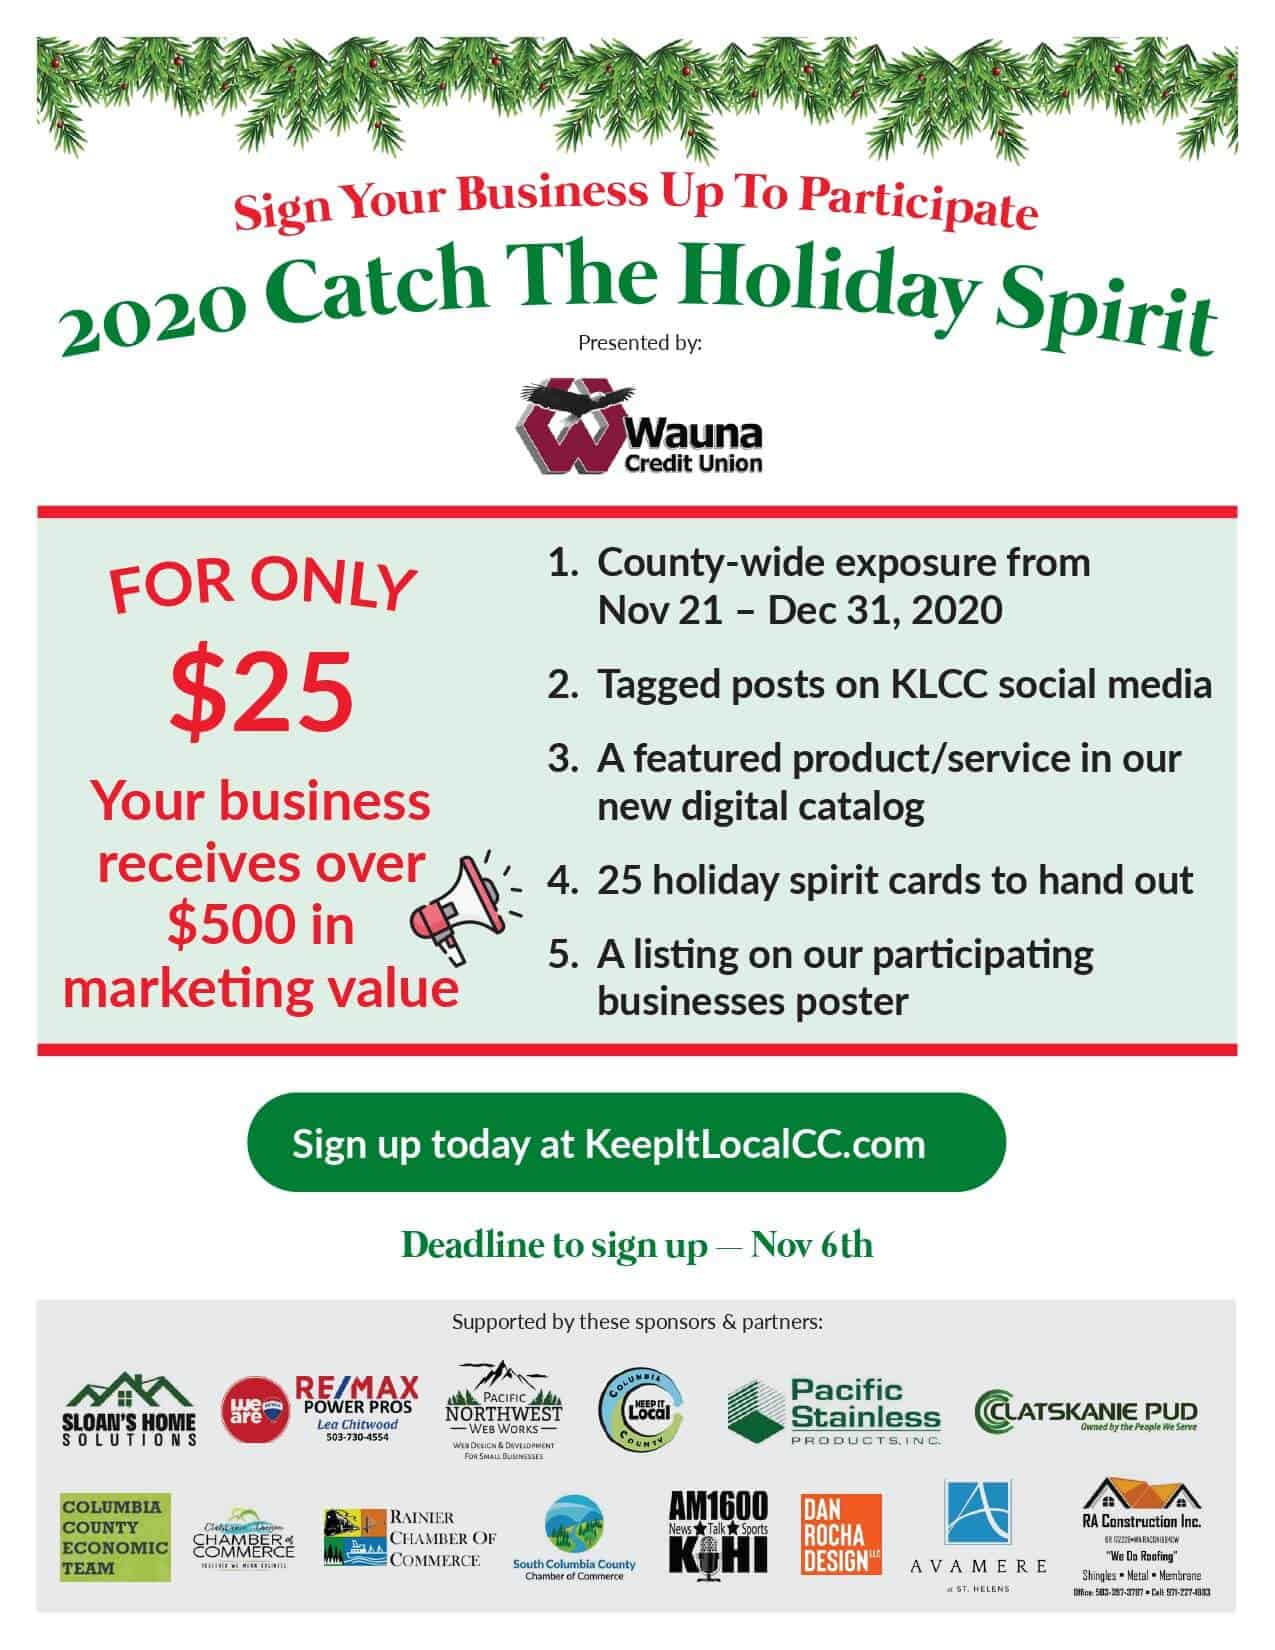 Catch The Holiday Spirit - Participating Business